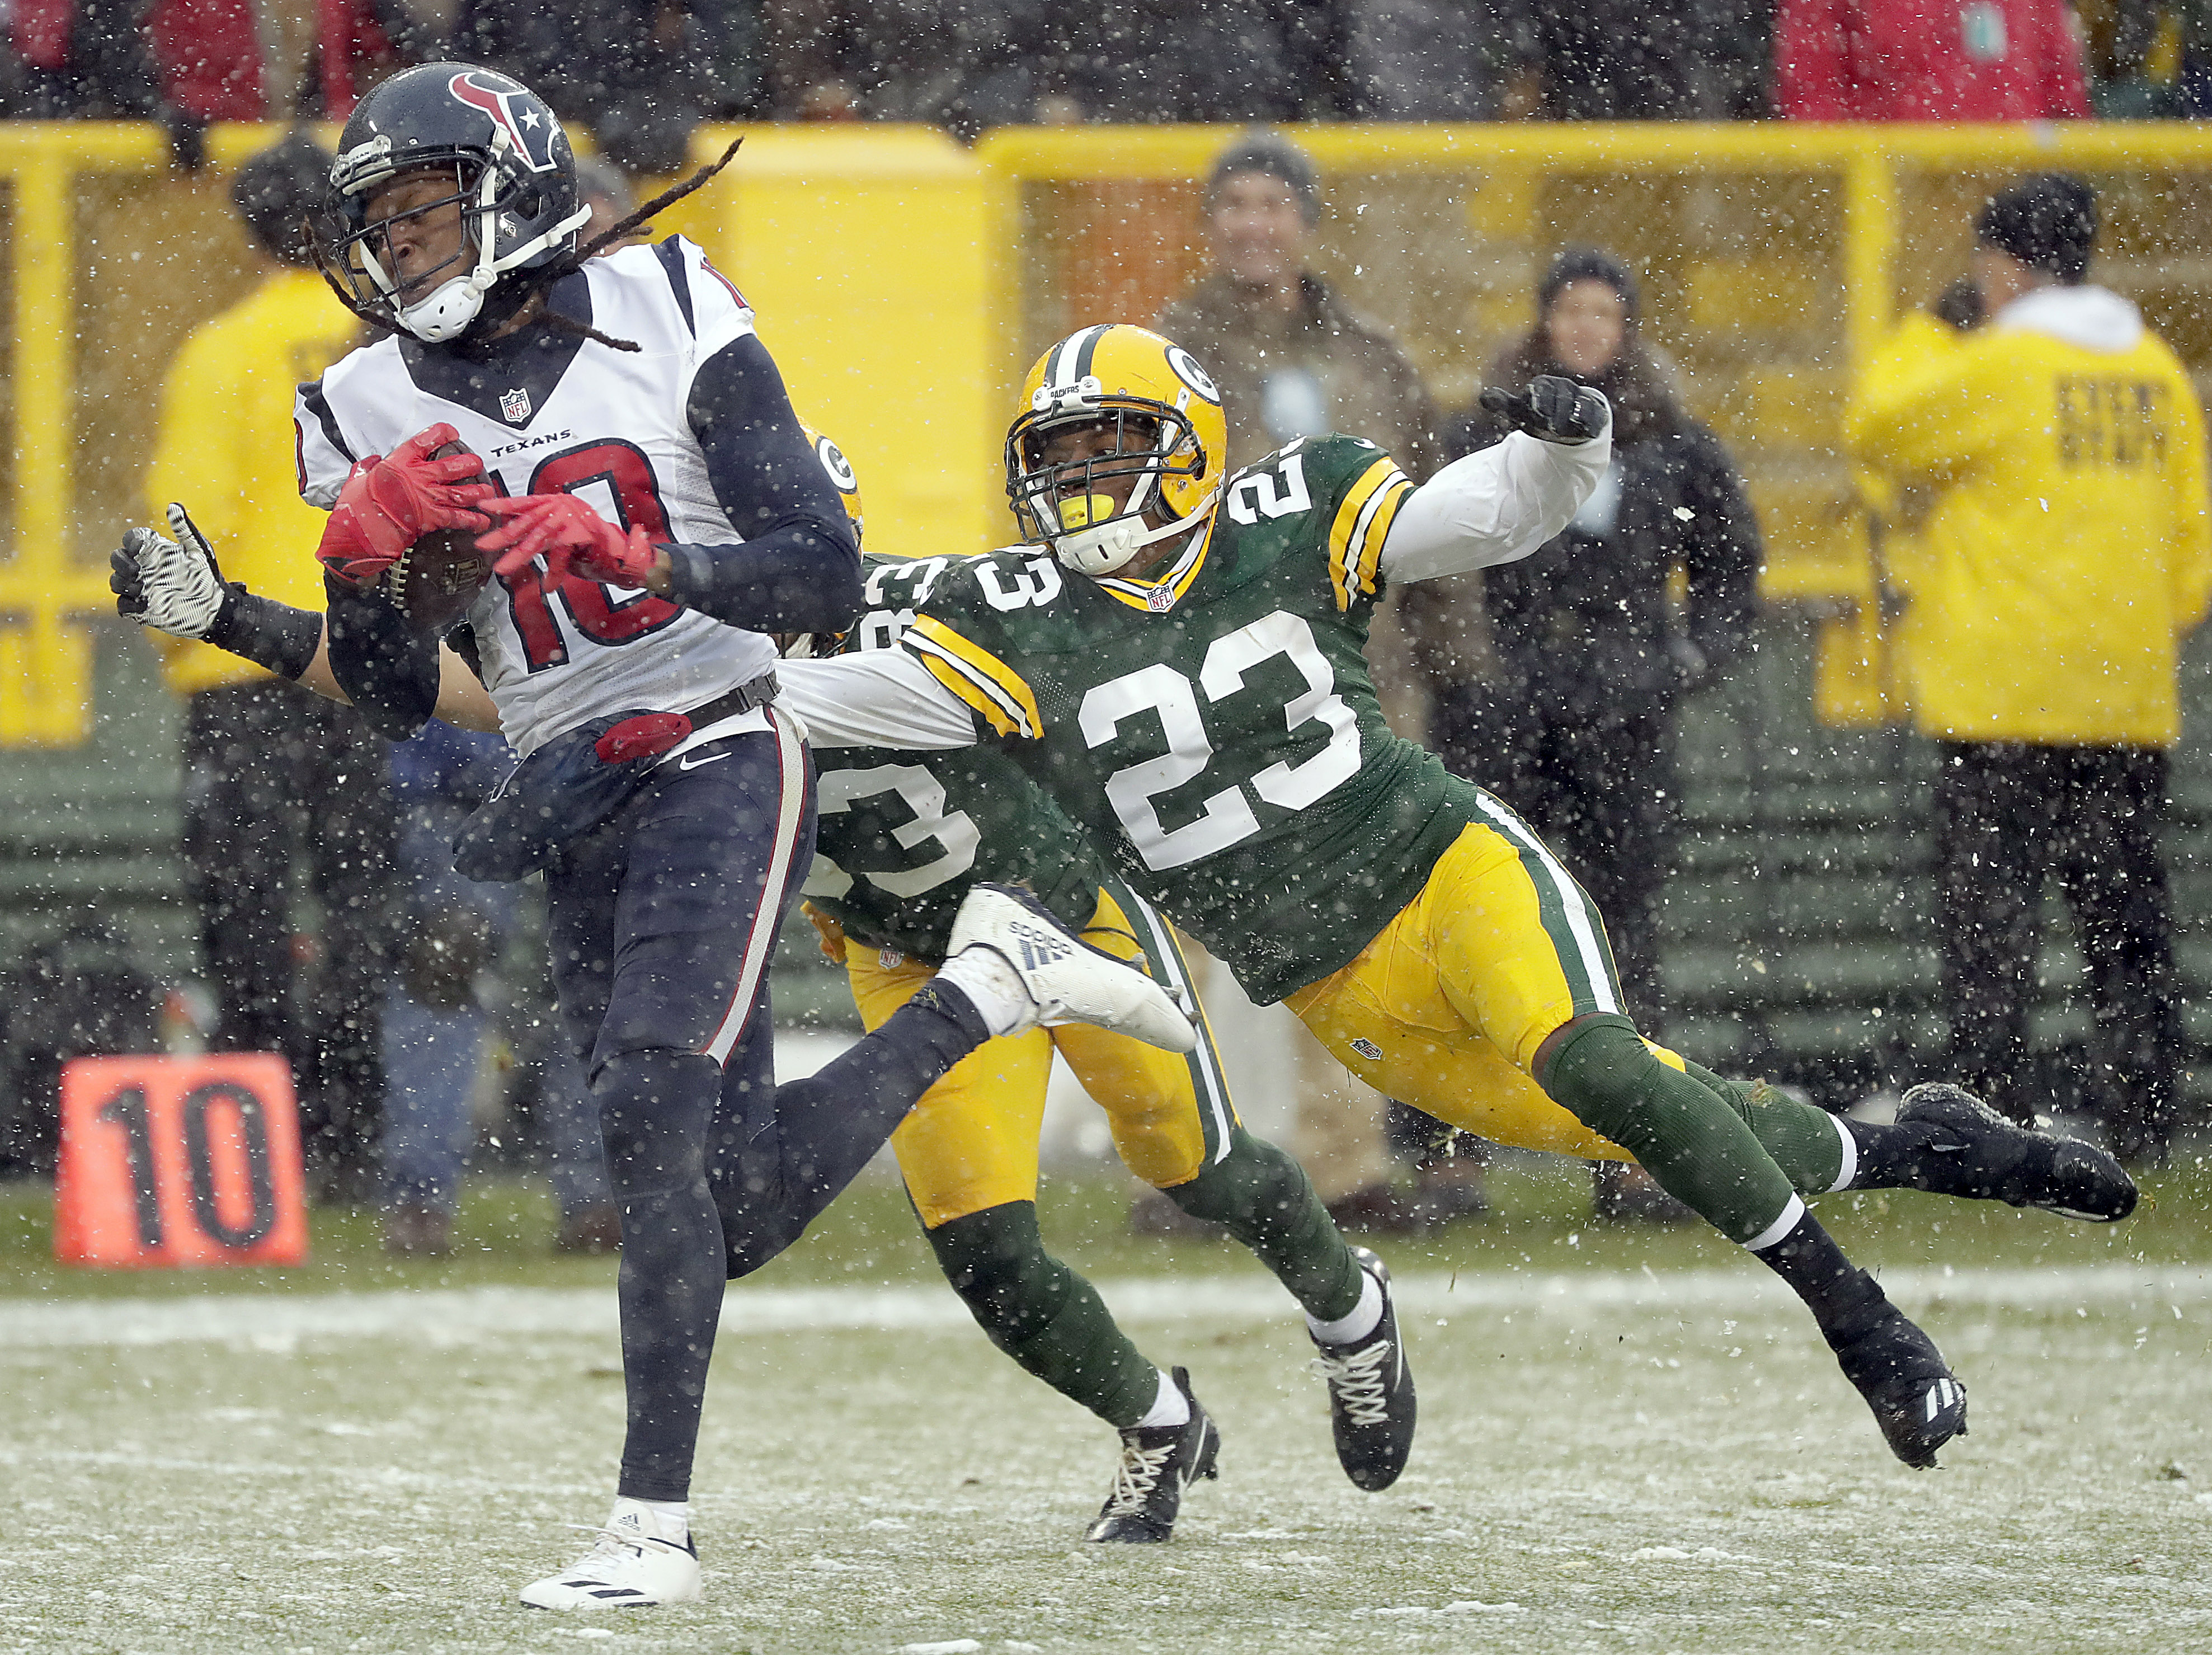 NFL: Houston Texans at Green Bay Packers